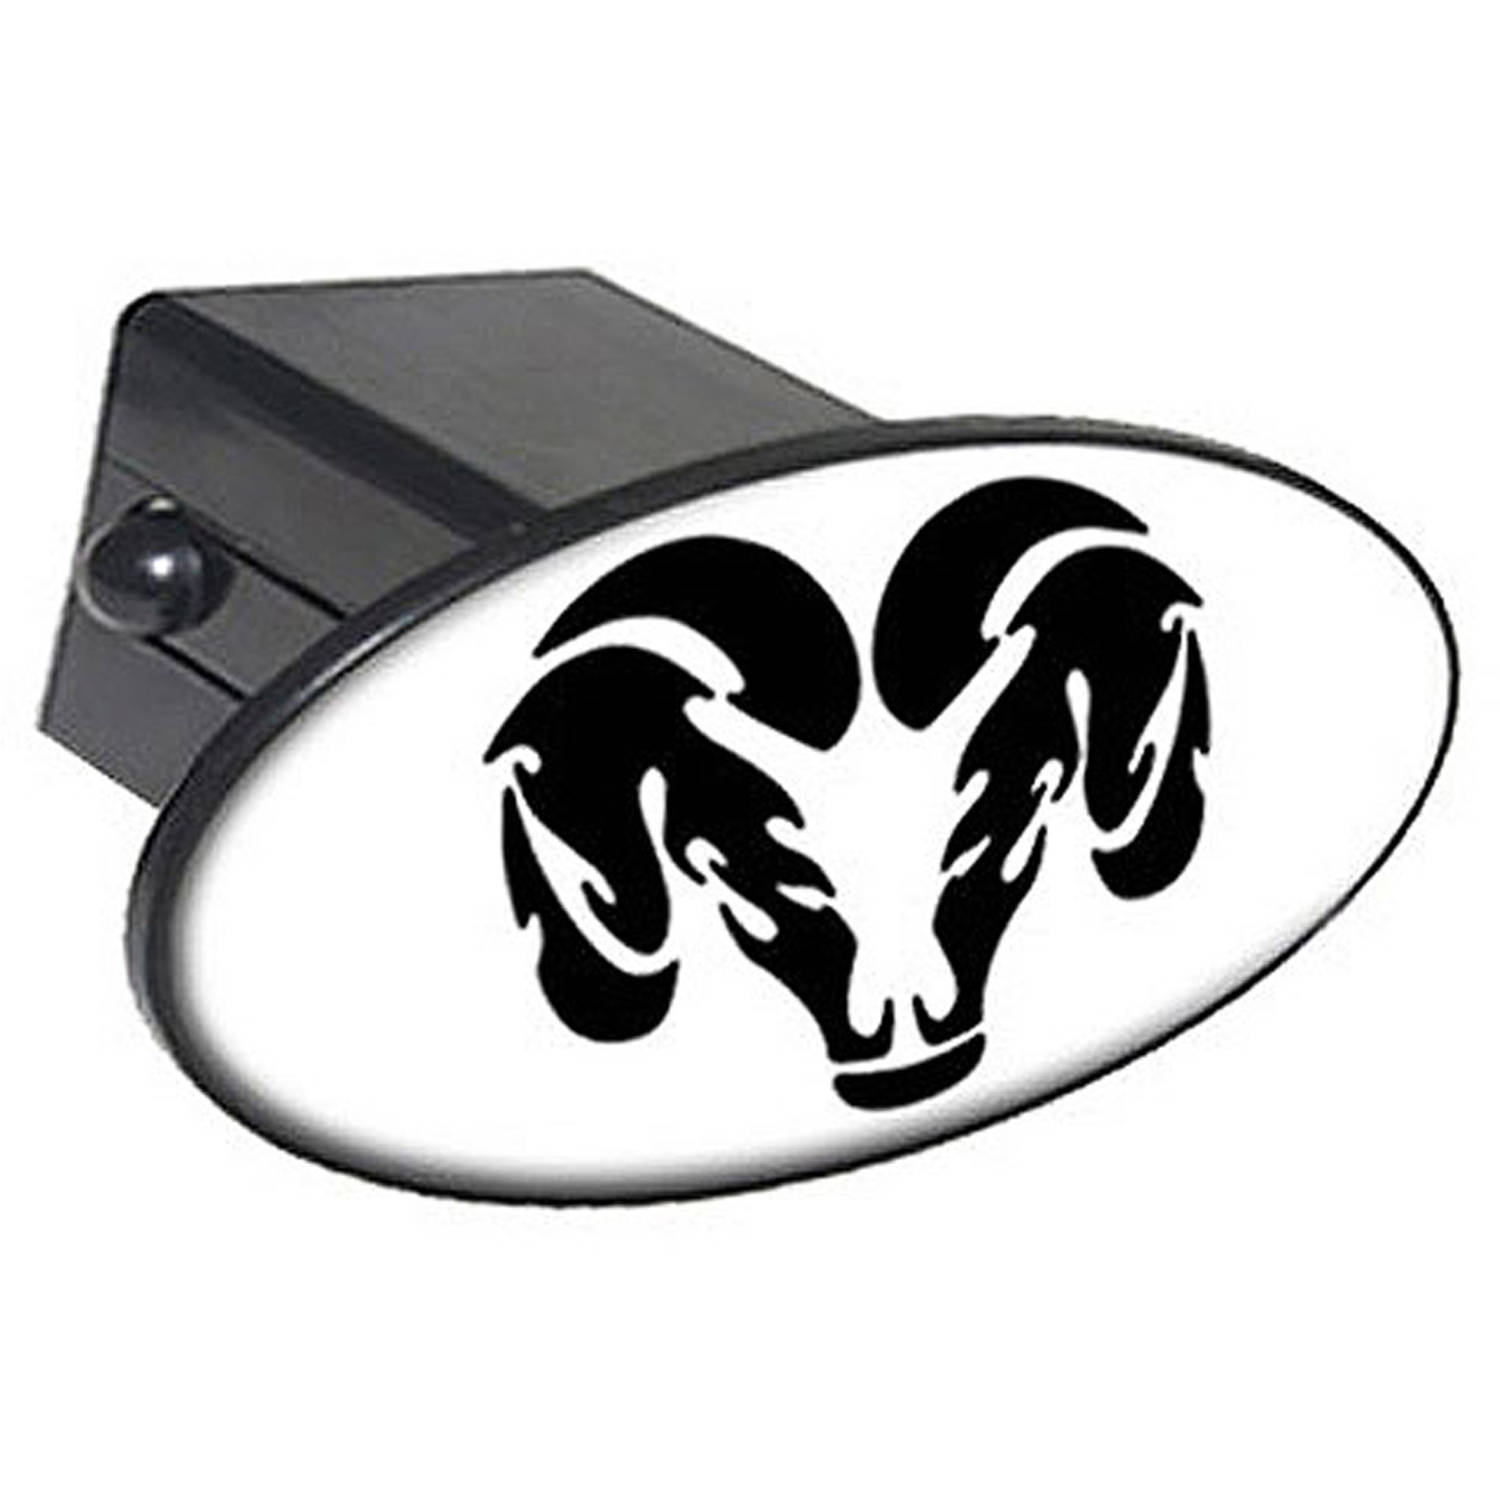 """Ram Head Black On White 2"""" Oval Tow Trailer Hitch Cover Plug Insert"""